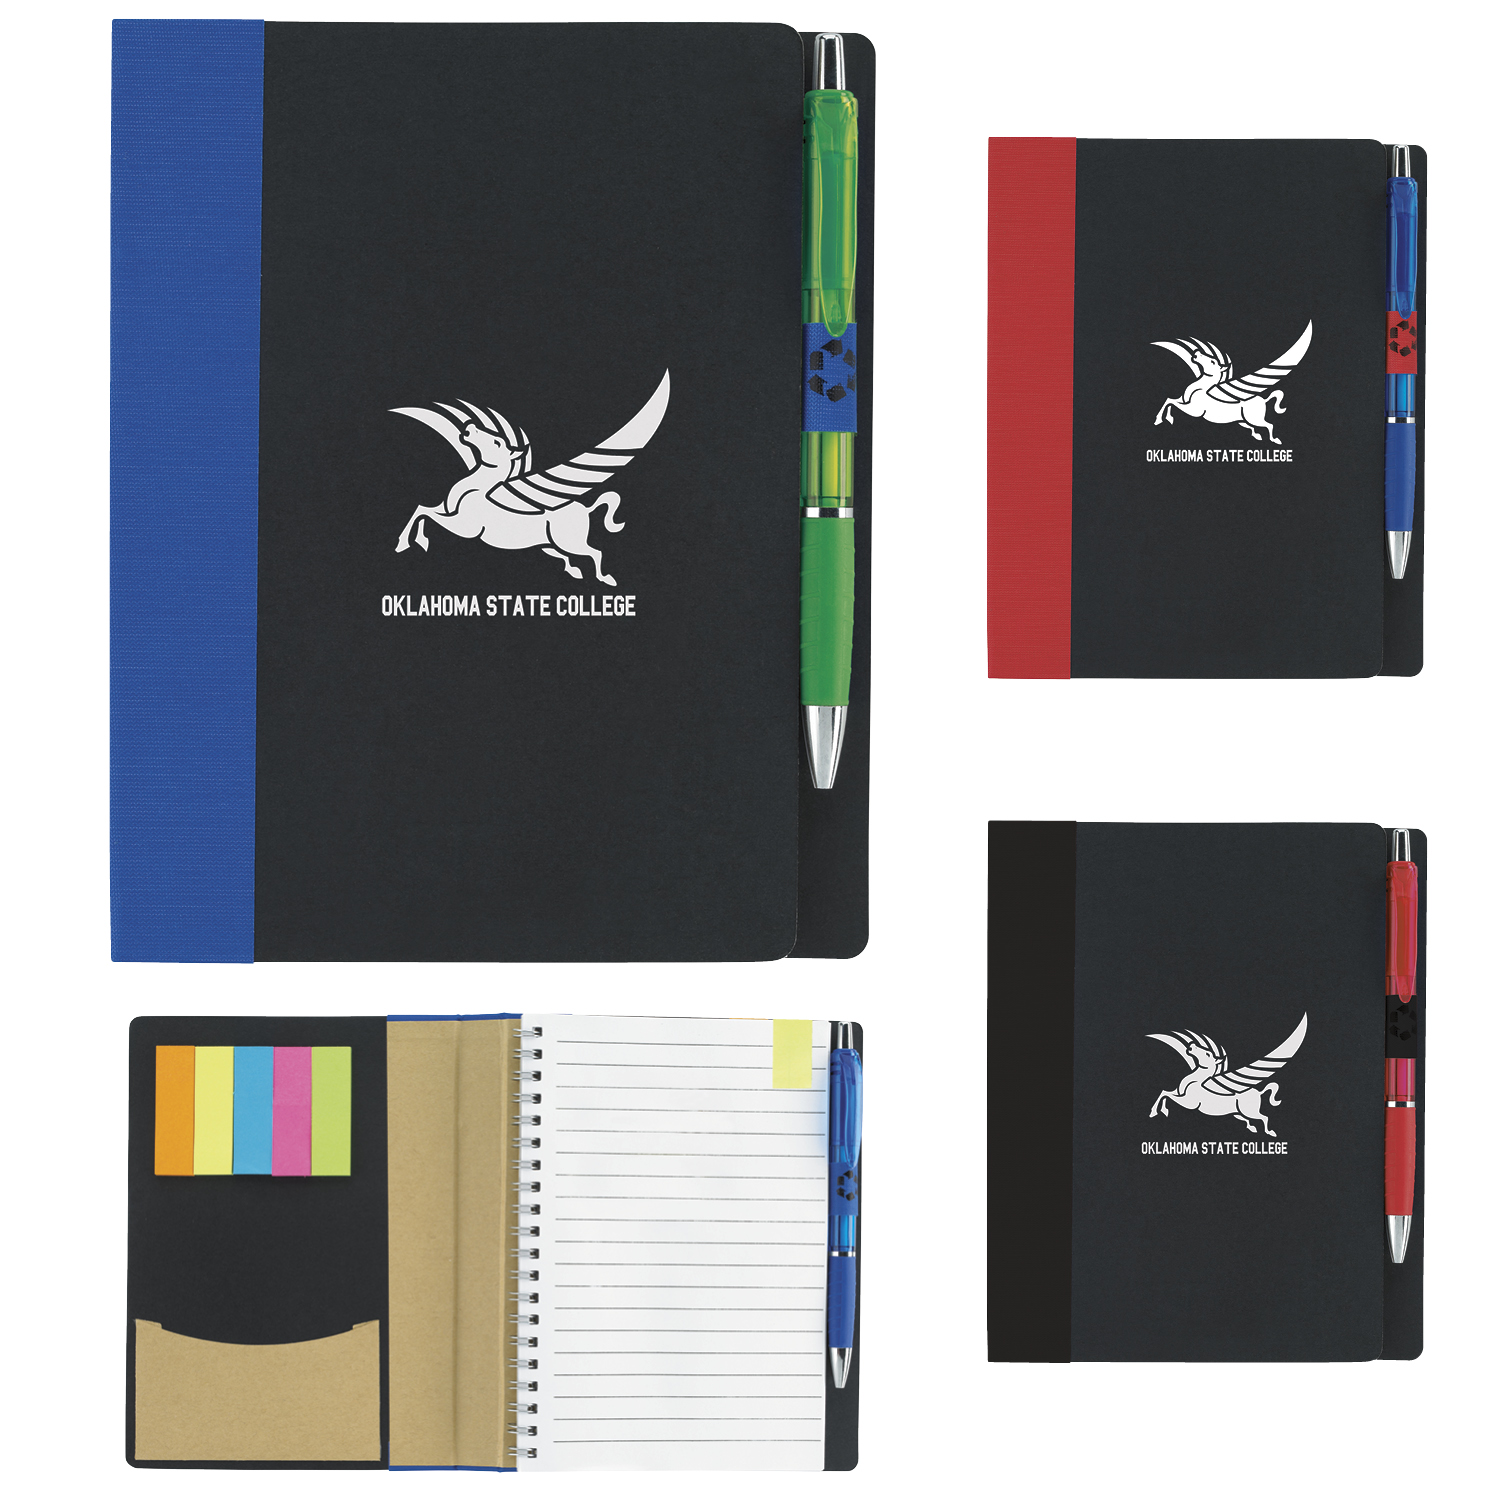 15693-5x7econotebookwflags